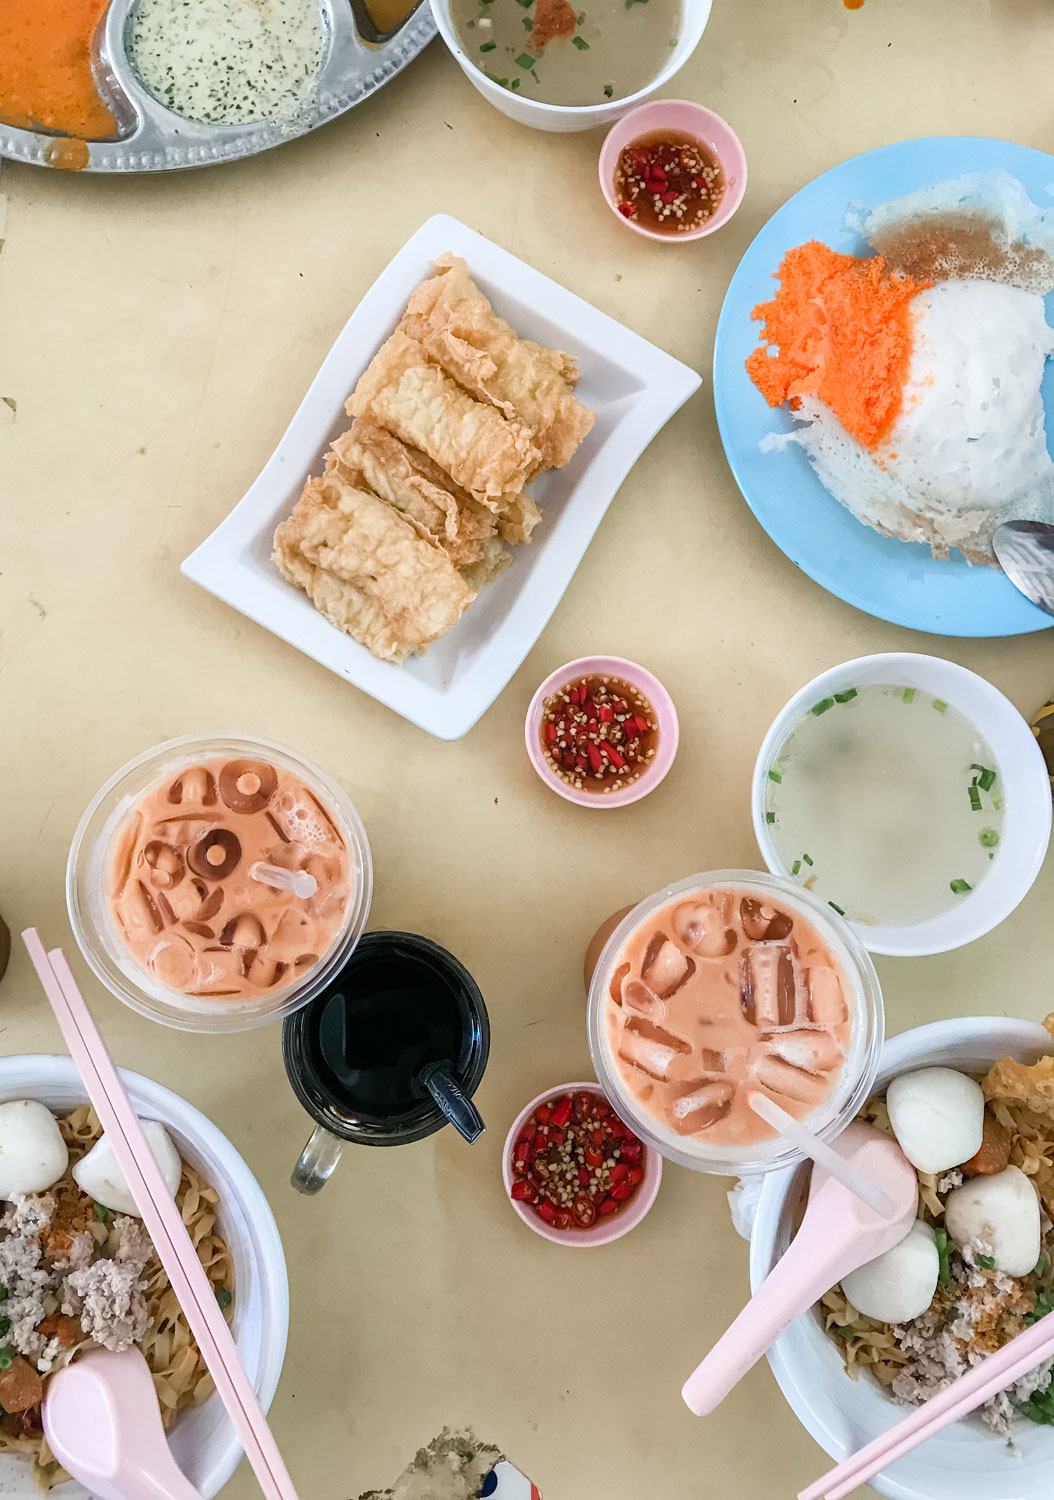 A table with drinks and different dishes.